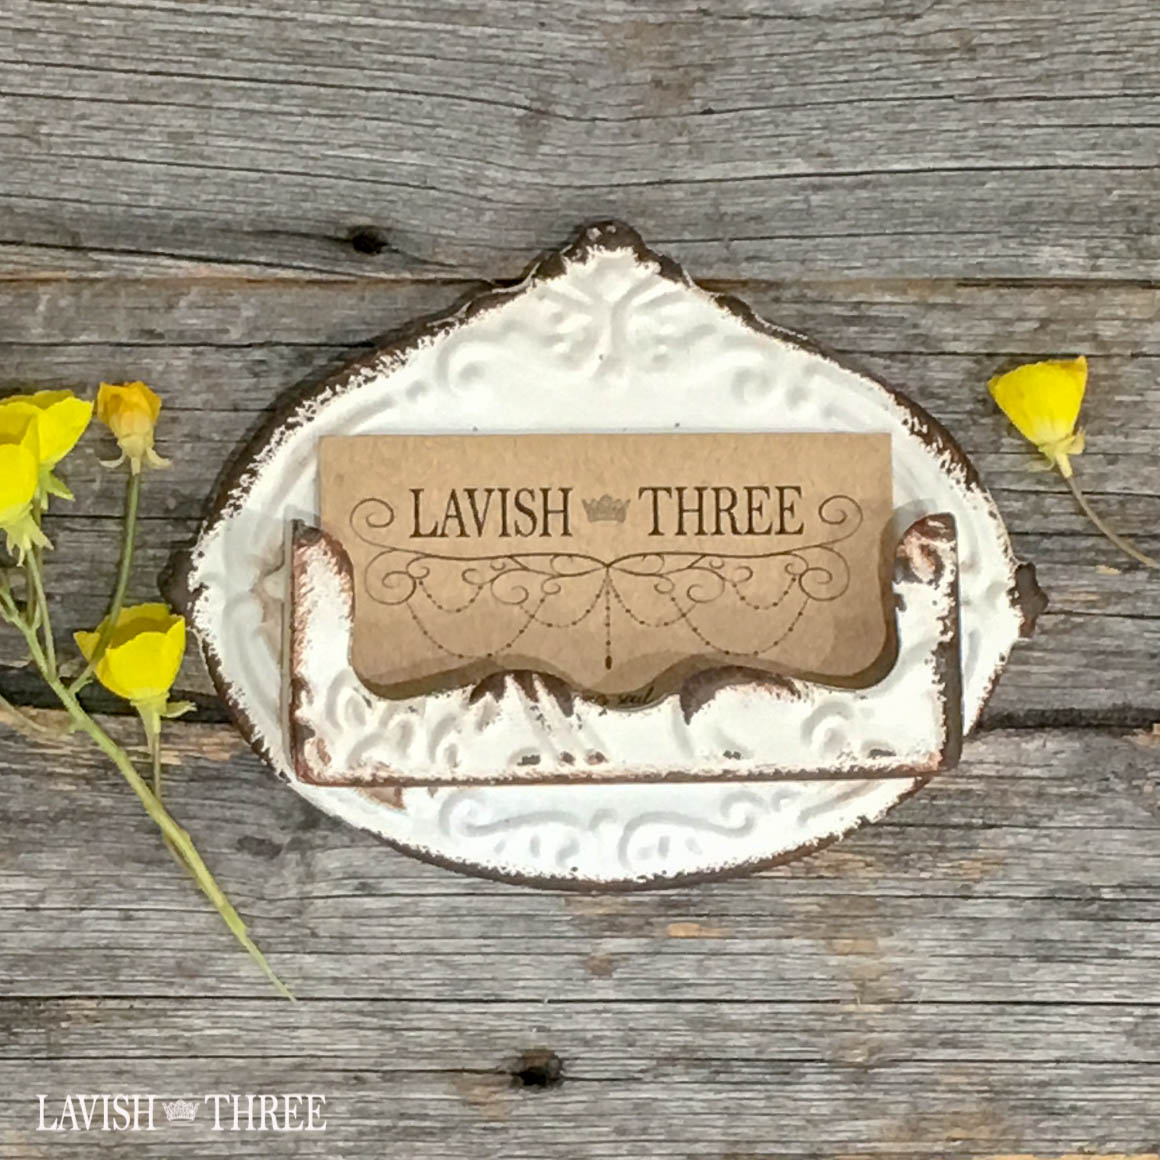 Vintage antique look shabby chic metal embossed business card holder white Lavish three 3